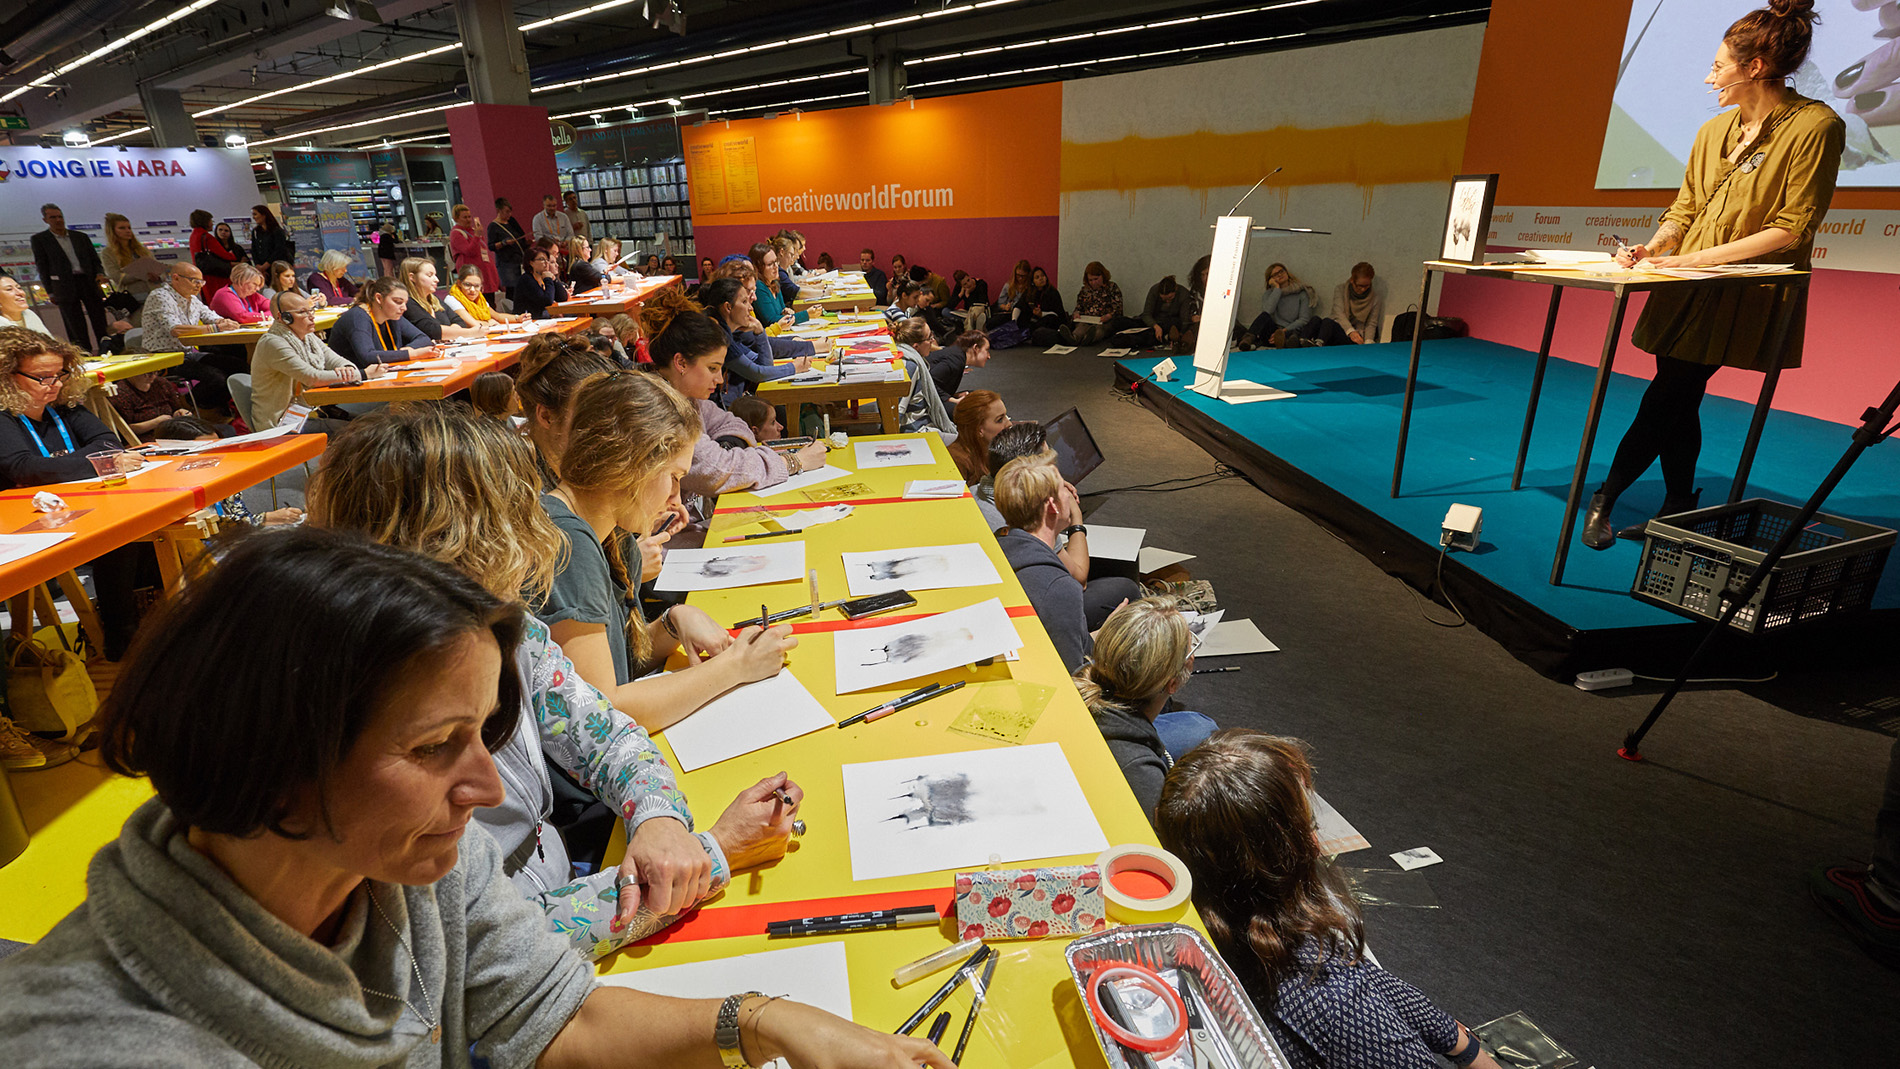 Creativeworld Academy – fully booked workshop with Ms. Hölle. Photo: Messe Frankfurt